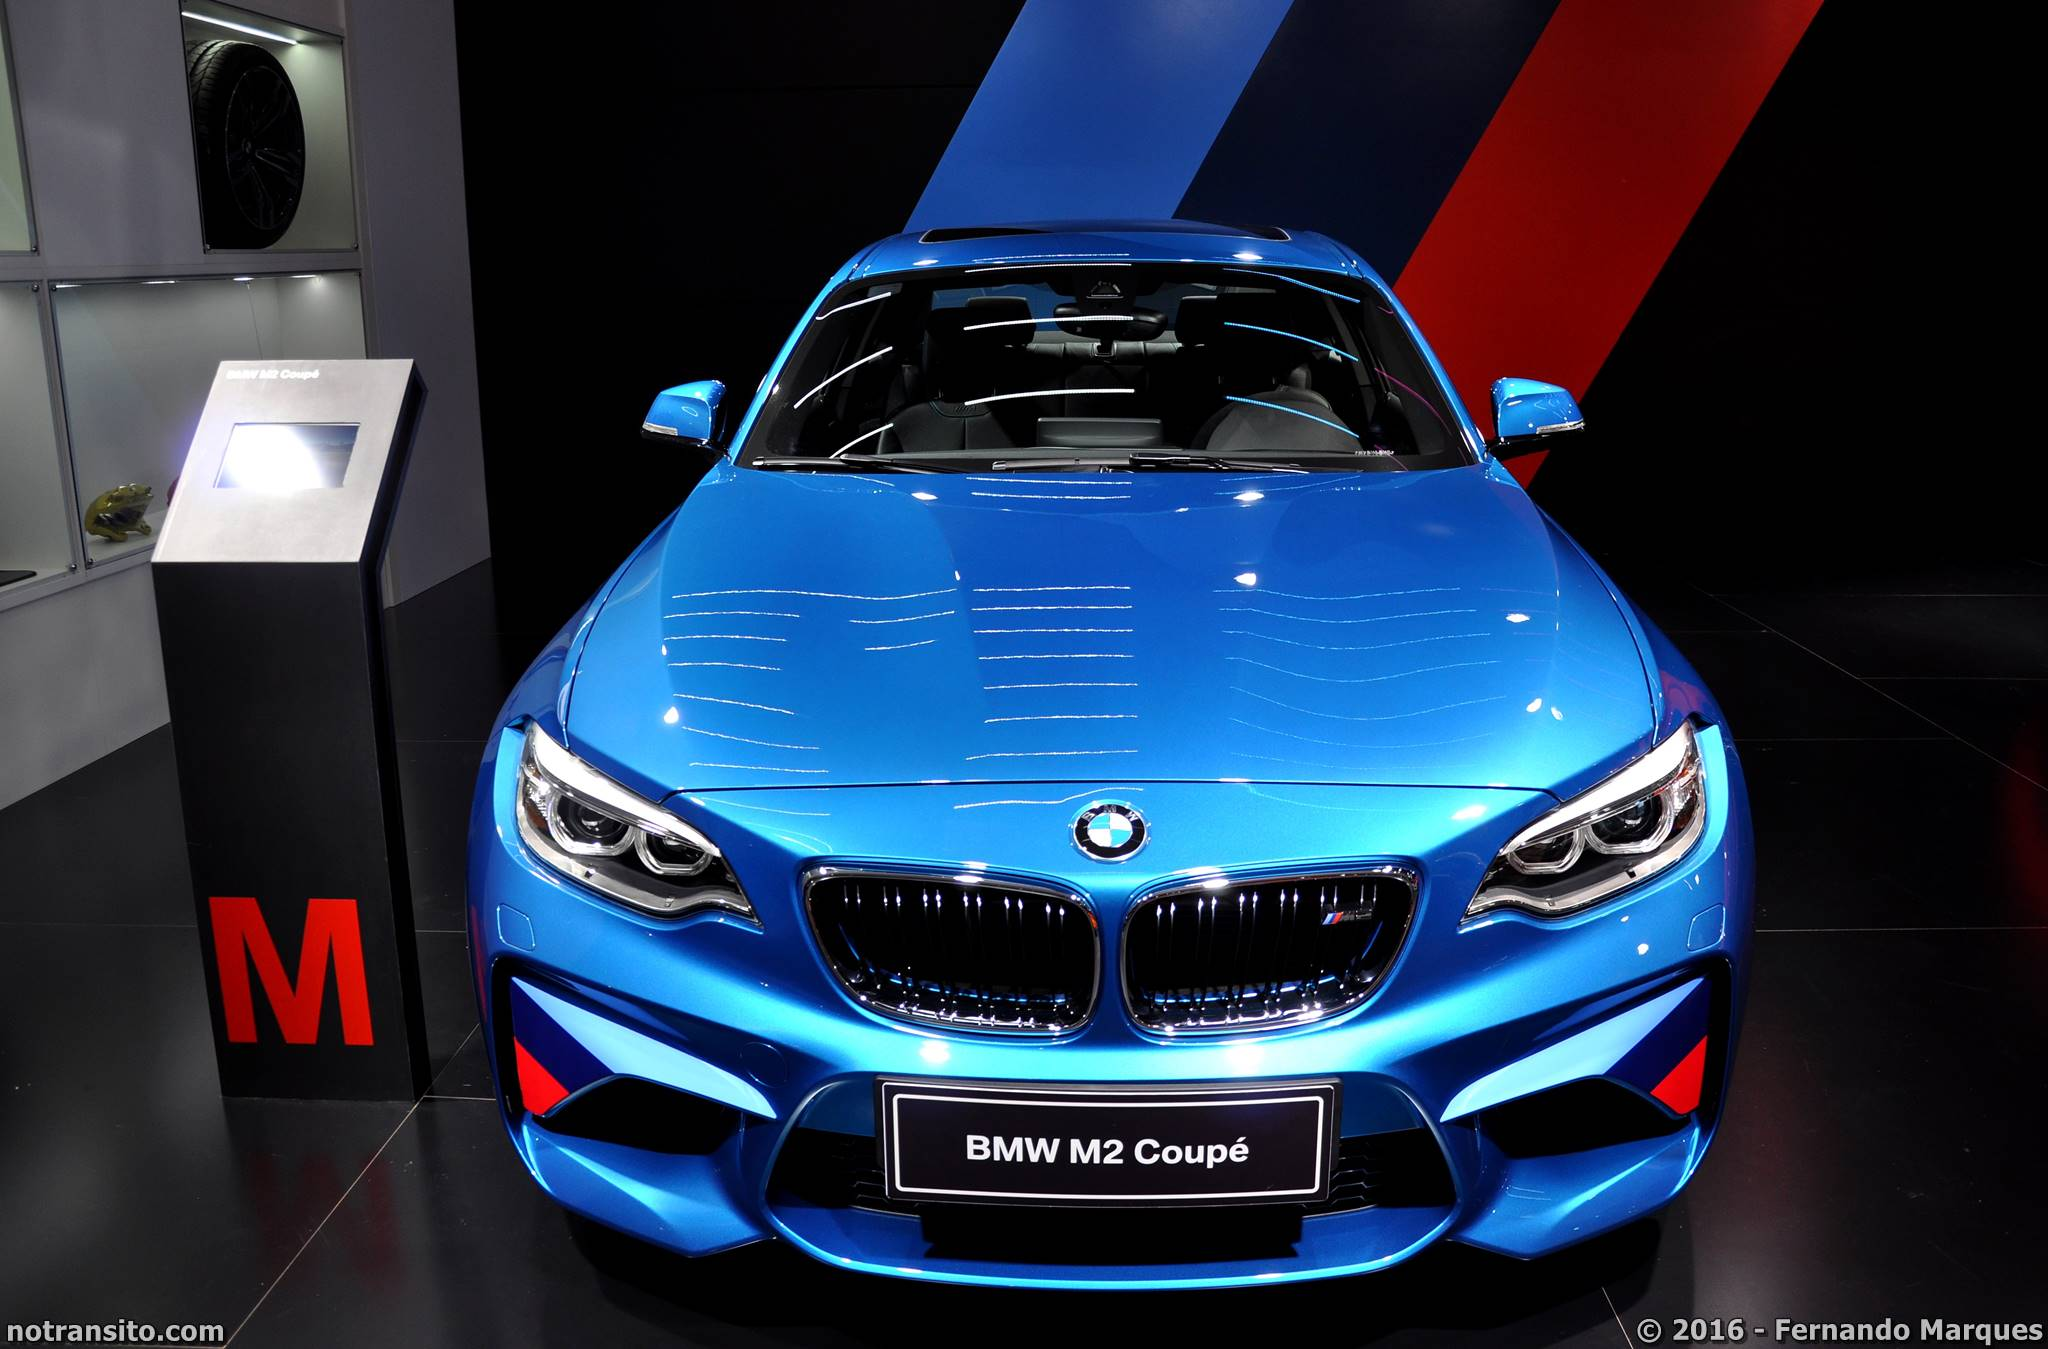 bmw-m2-coupe-005